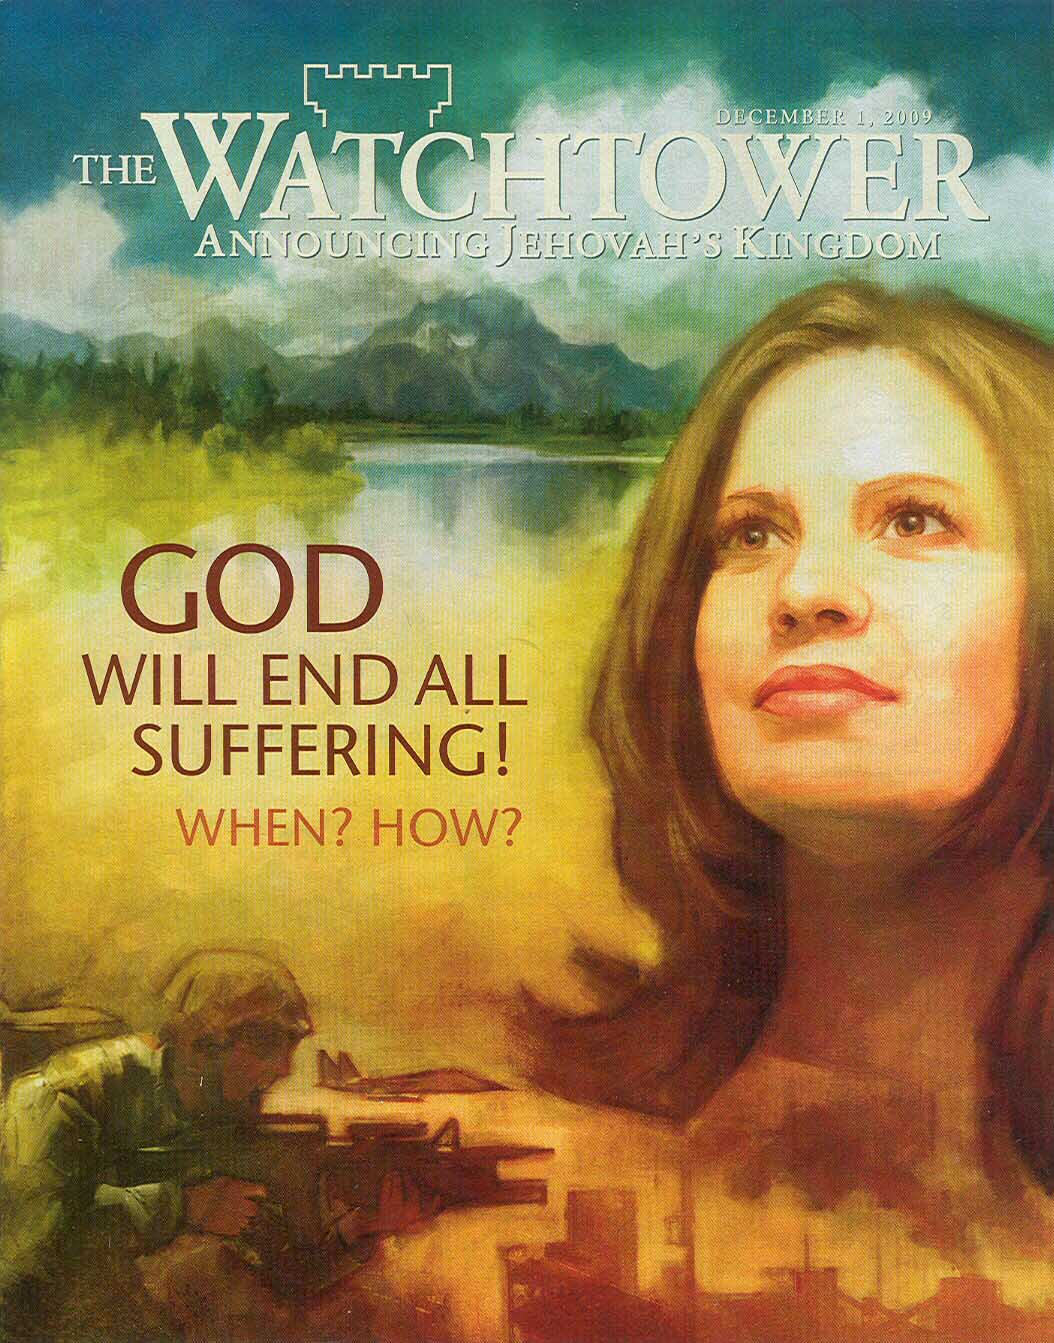 jehovahs witness We are jehovah's witnesses 97,051 likes 3,345 talking about this unofficial page | 2018 year text | those hoping in jehovah will regain power.